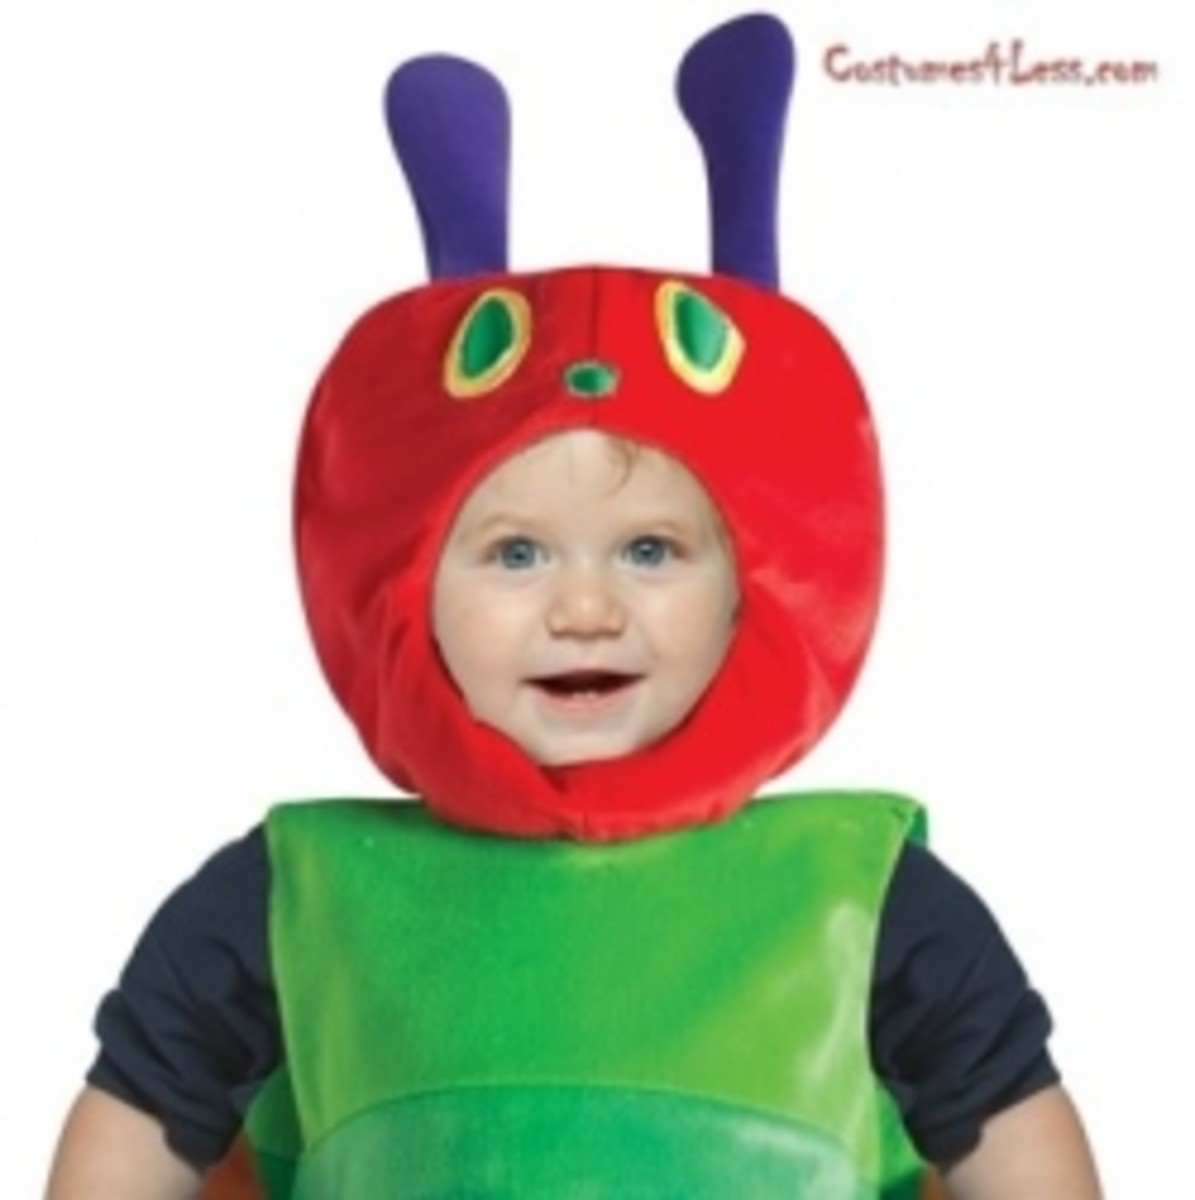 Eric Carle Costumes and Books